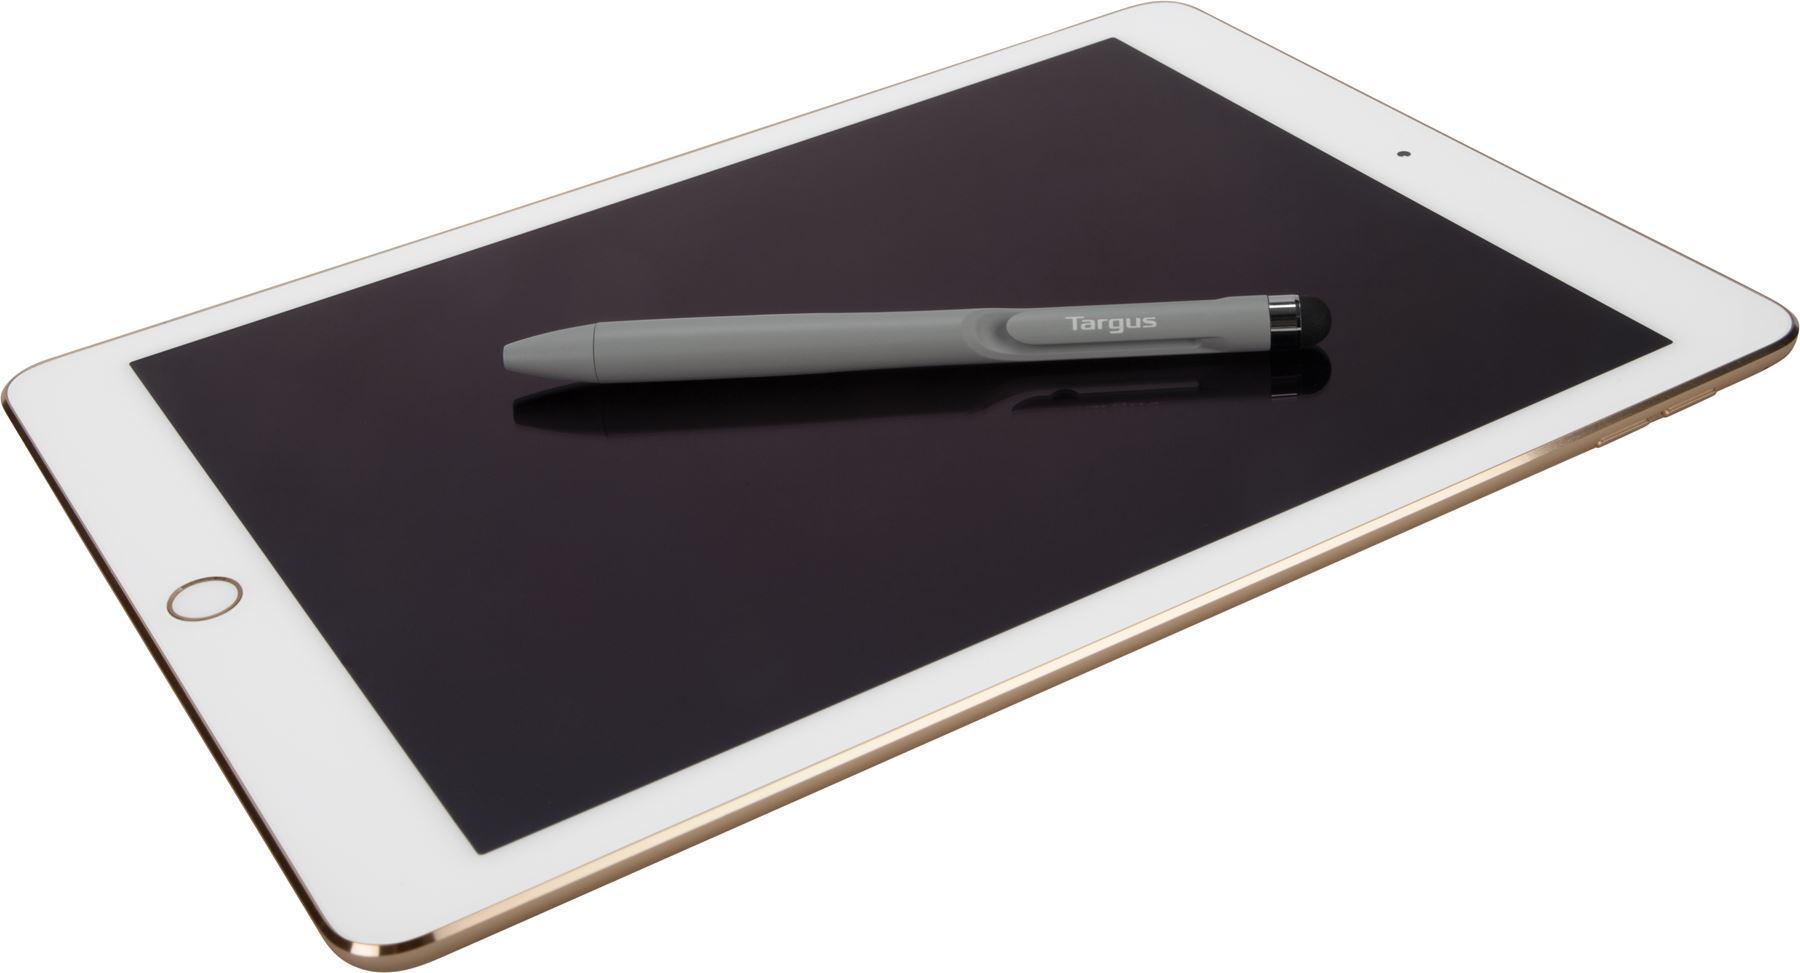 Picture of Targus 2 in 1 Pen Stylus for all Touchscreen Devices - Grey